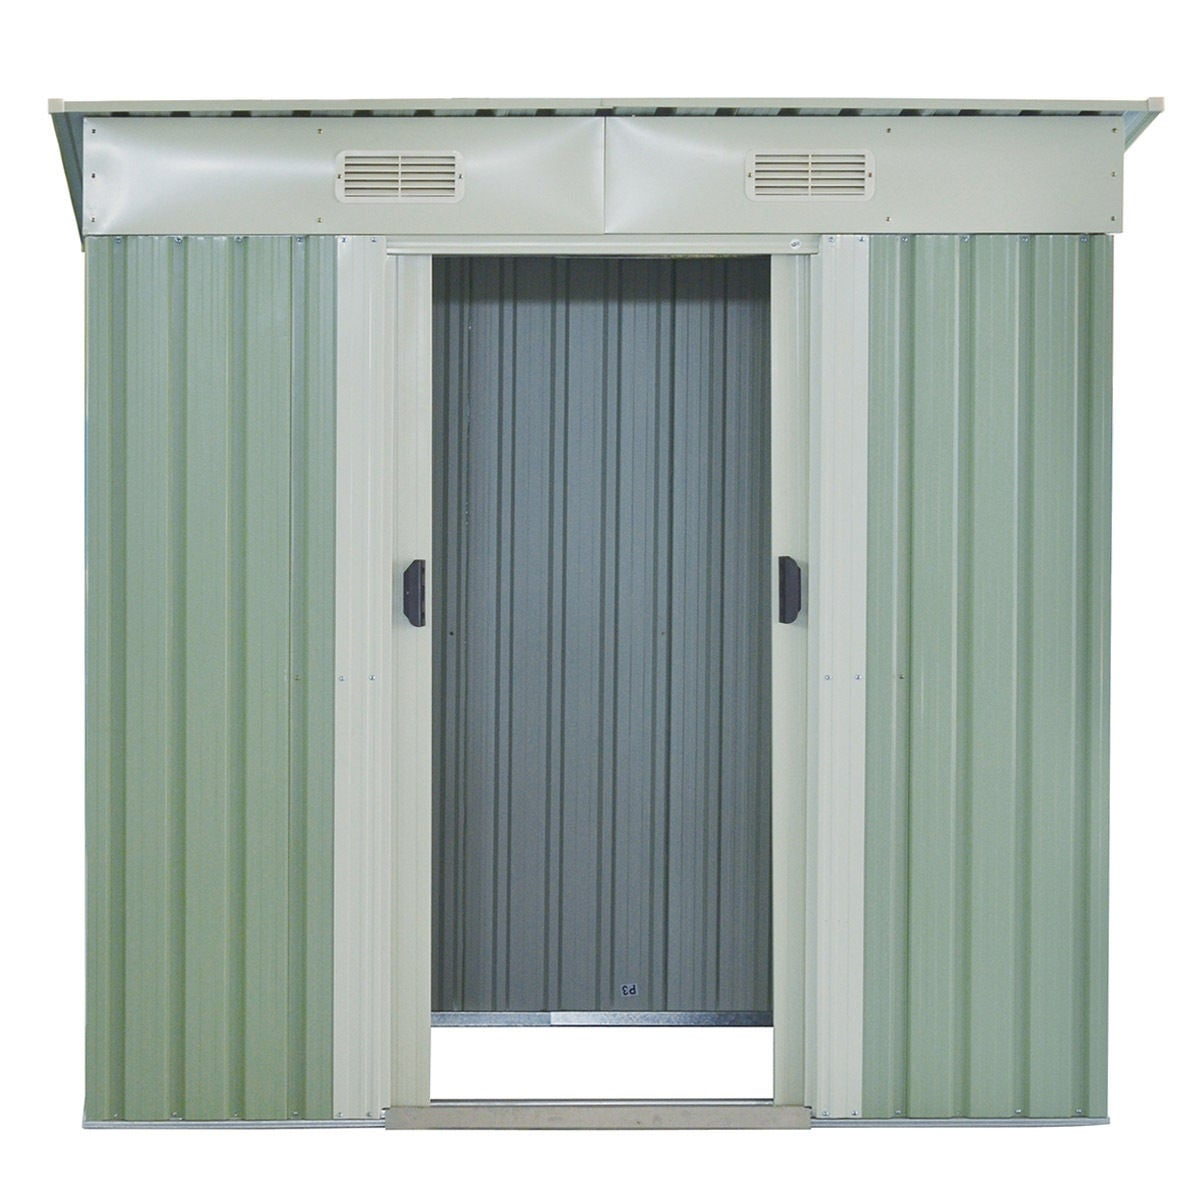 Costway 4x6FT Outdoor Garden Storage Shed Tool House Sliding Door Galvanized Steel Green - Free Shipping Today - Overstock - 22766920  sc 1 st  Overstock.com & Costway 4x6FT Outdoor Garden Storage Shed Tool House Sliding Door ...